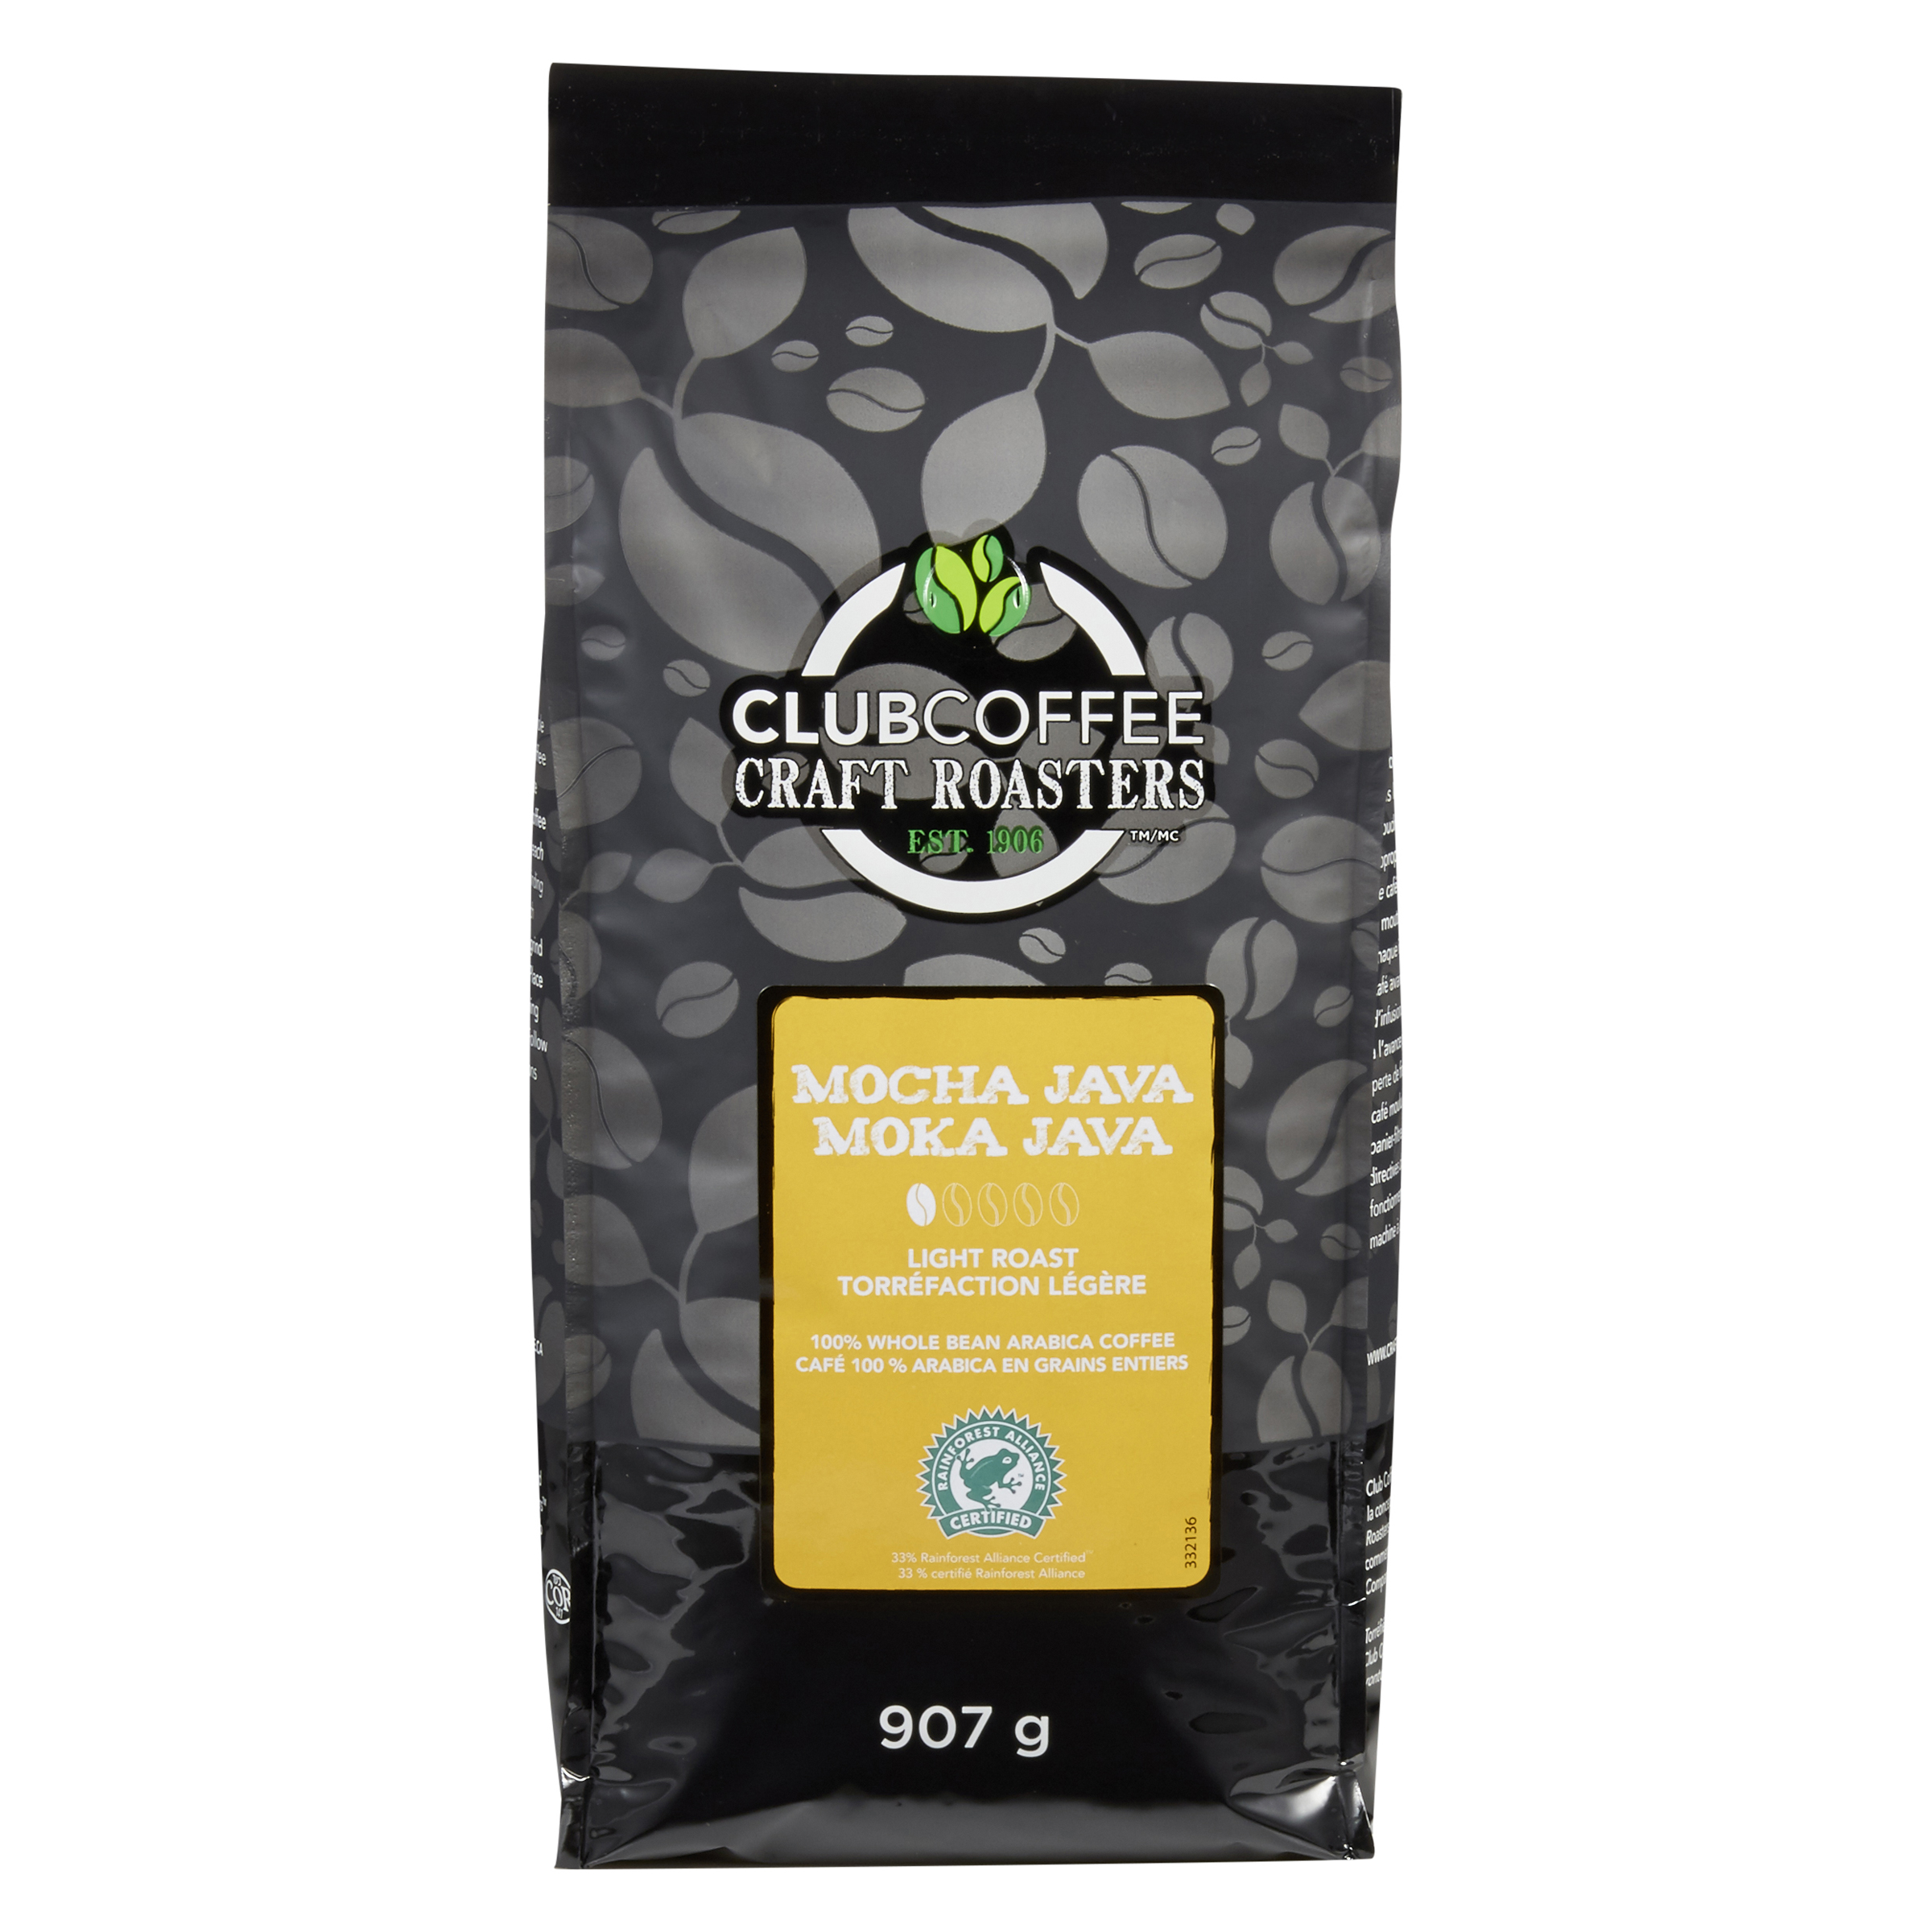 Club Coffee Craft Roasters - Mocha Java Light Roast Whole Bean Coffee